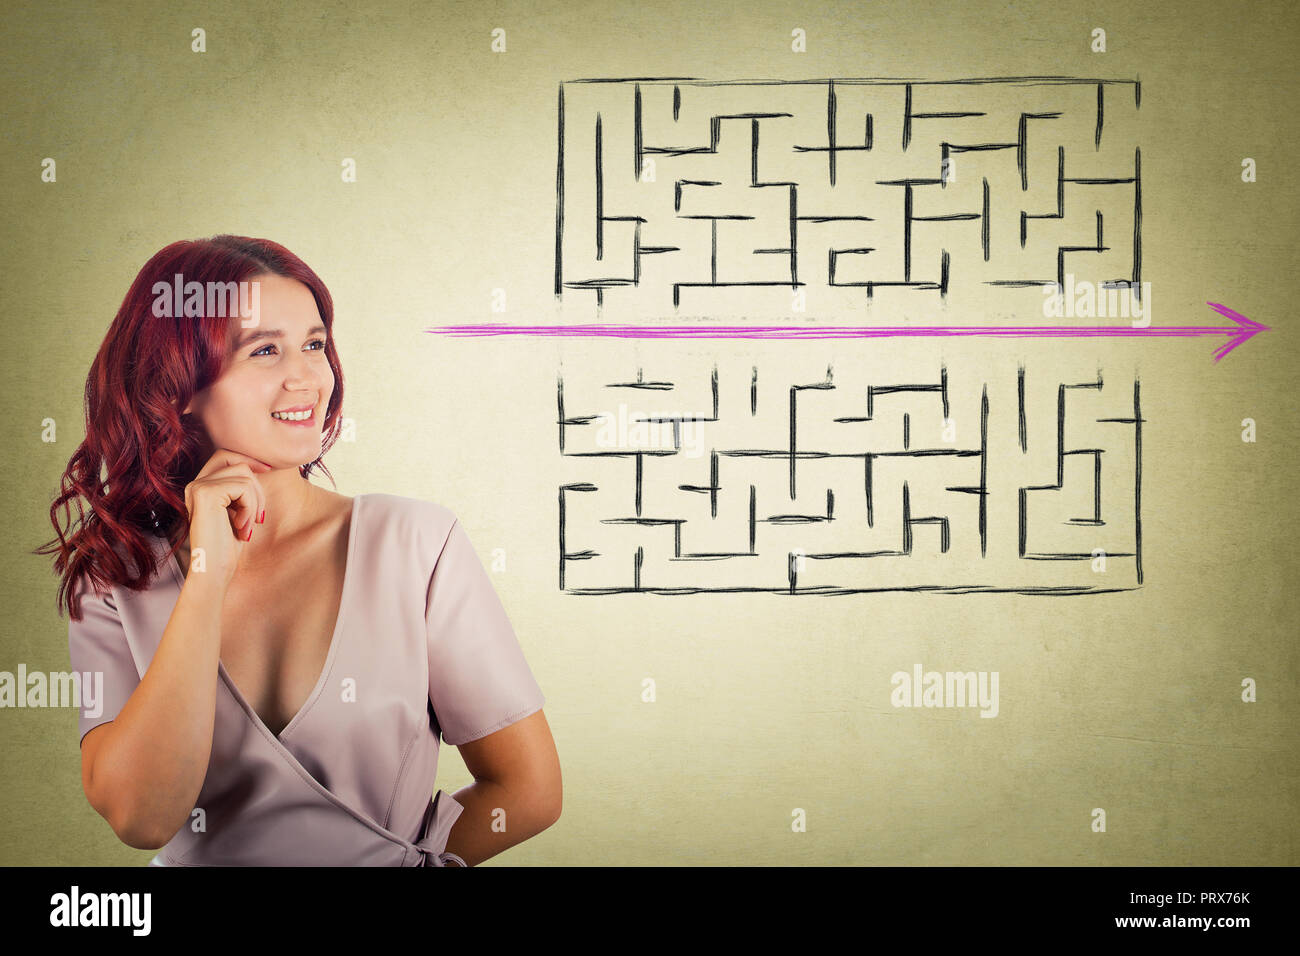 Young redhead pensive woman holding hand under chin thoughtful looking to find a solution to escape from maze. Young businesswoman breaking the rules, - Stock Image